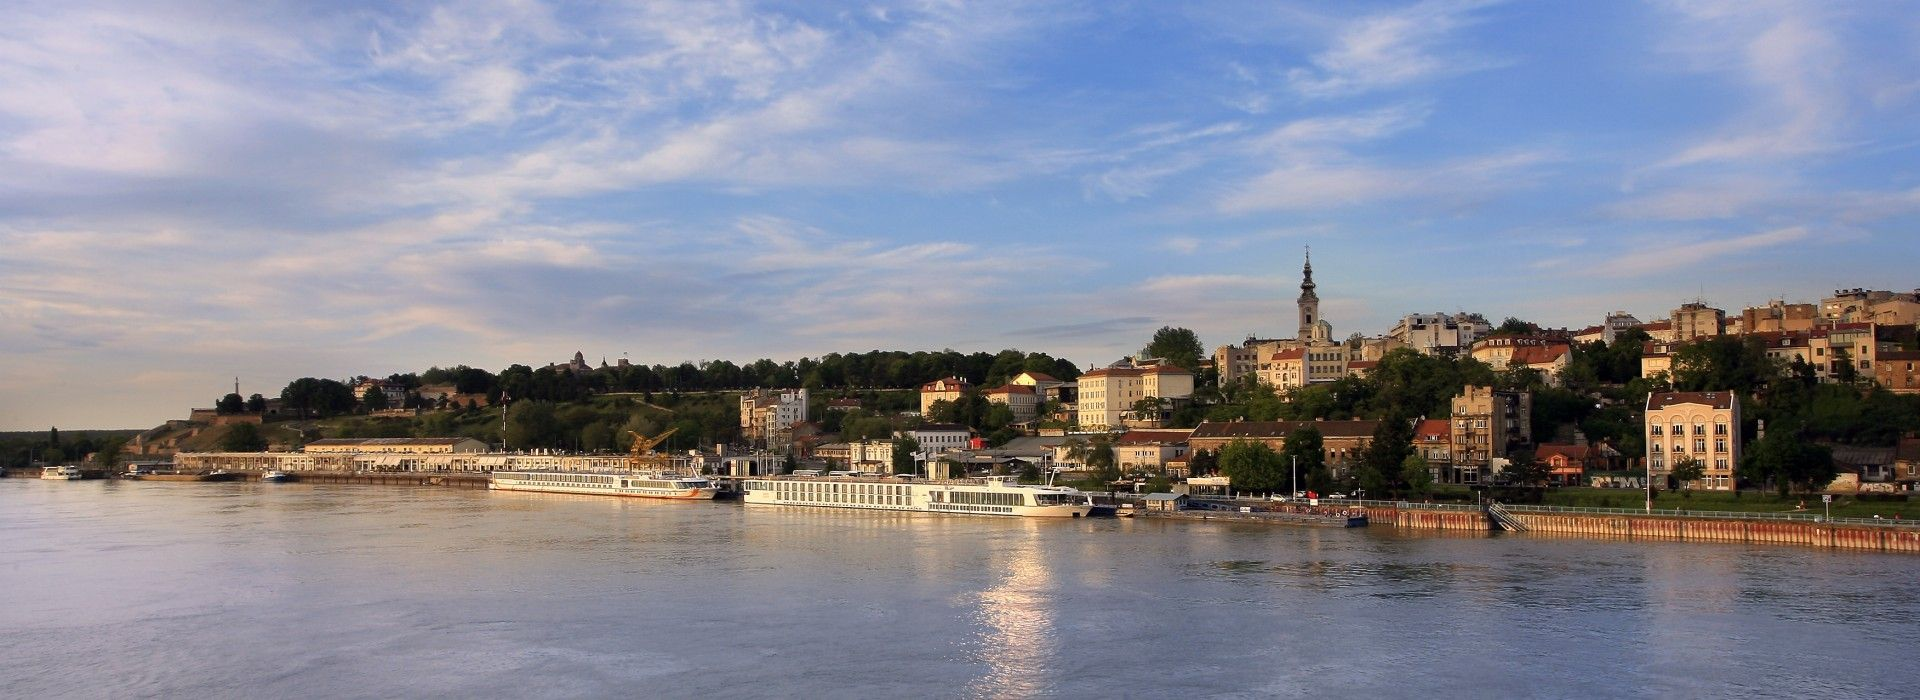 Sightseeing, attractions, culture and history Tours in Serbia